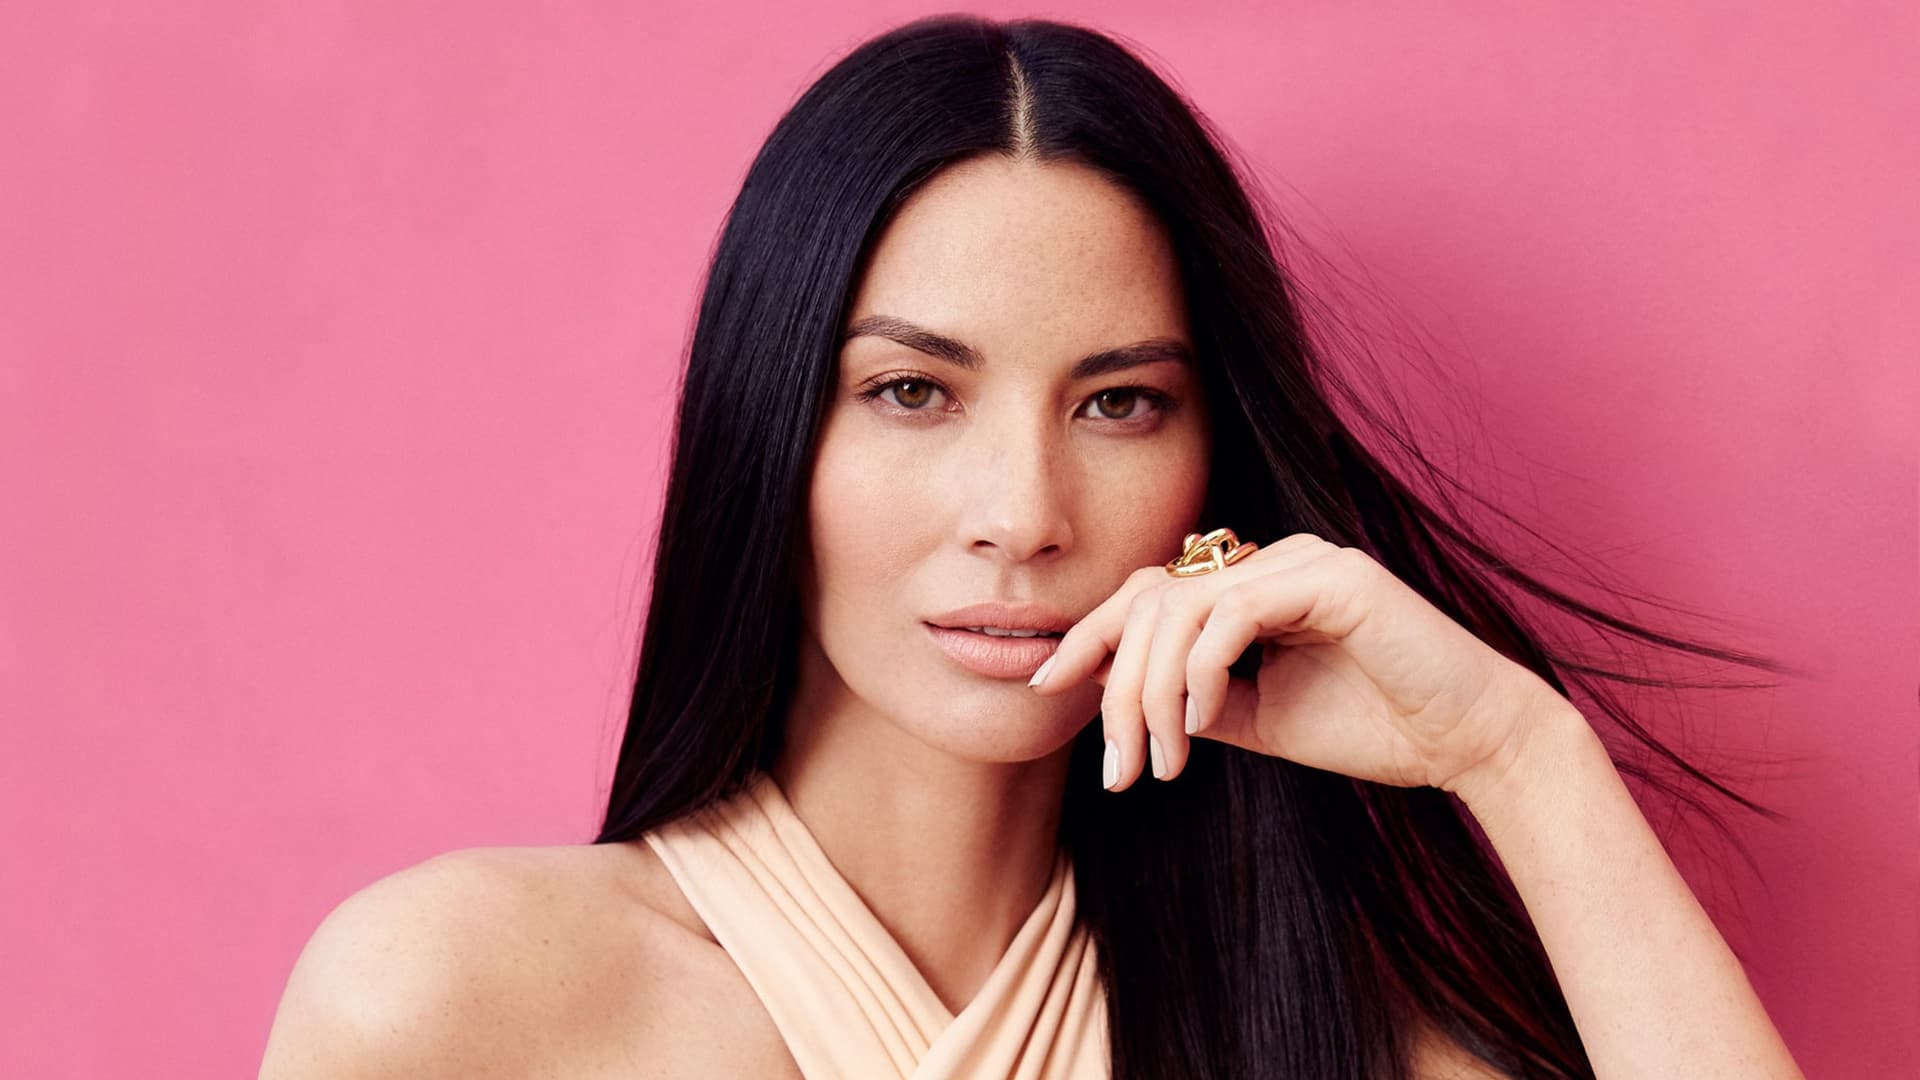 Olivia Munn Wallpapers Pictures Images Hd Download For